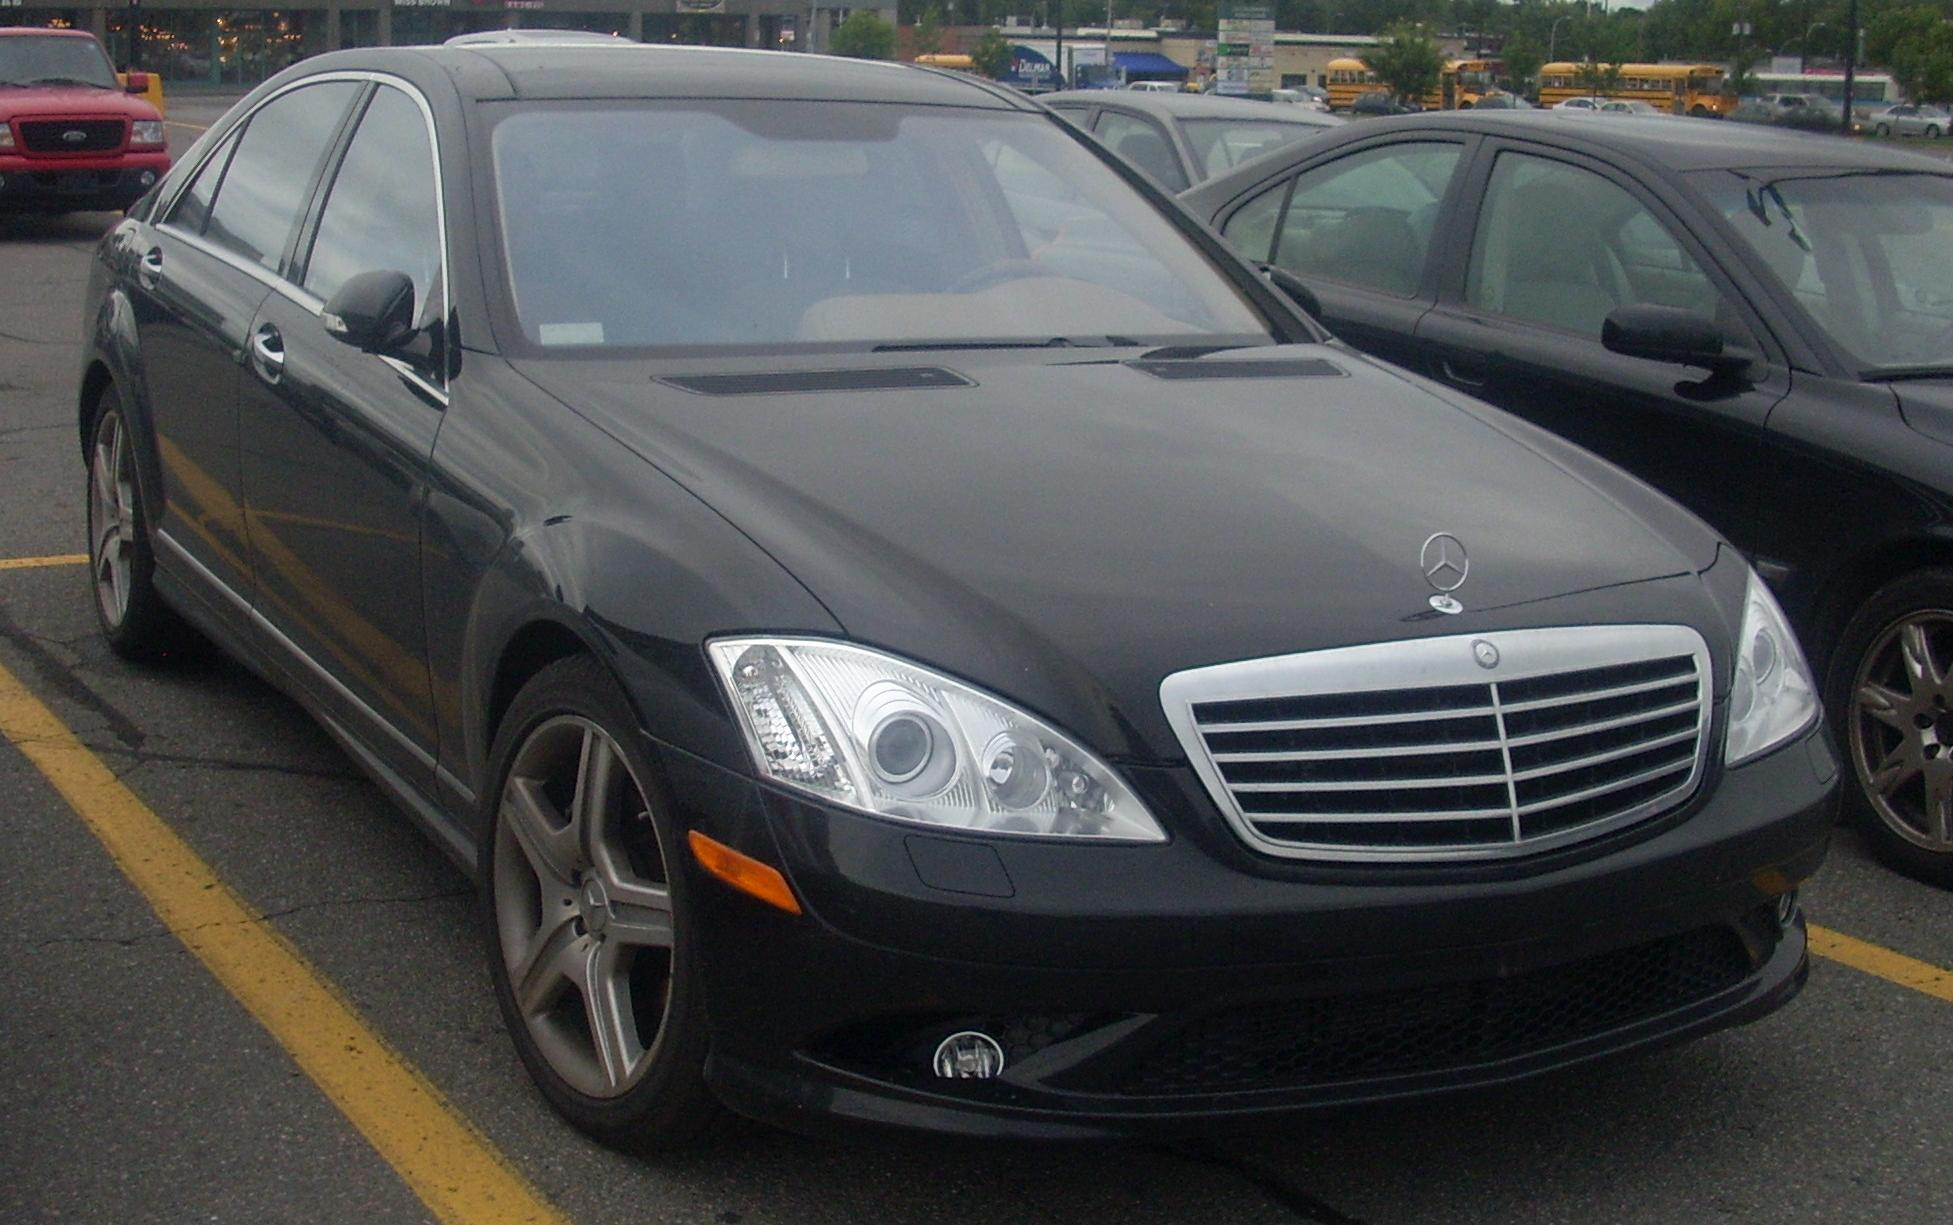 2008 mercedes benz s class image 7 for Mercedes benz s500 2008